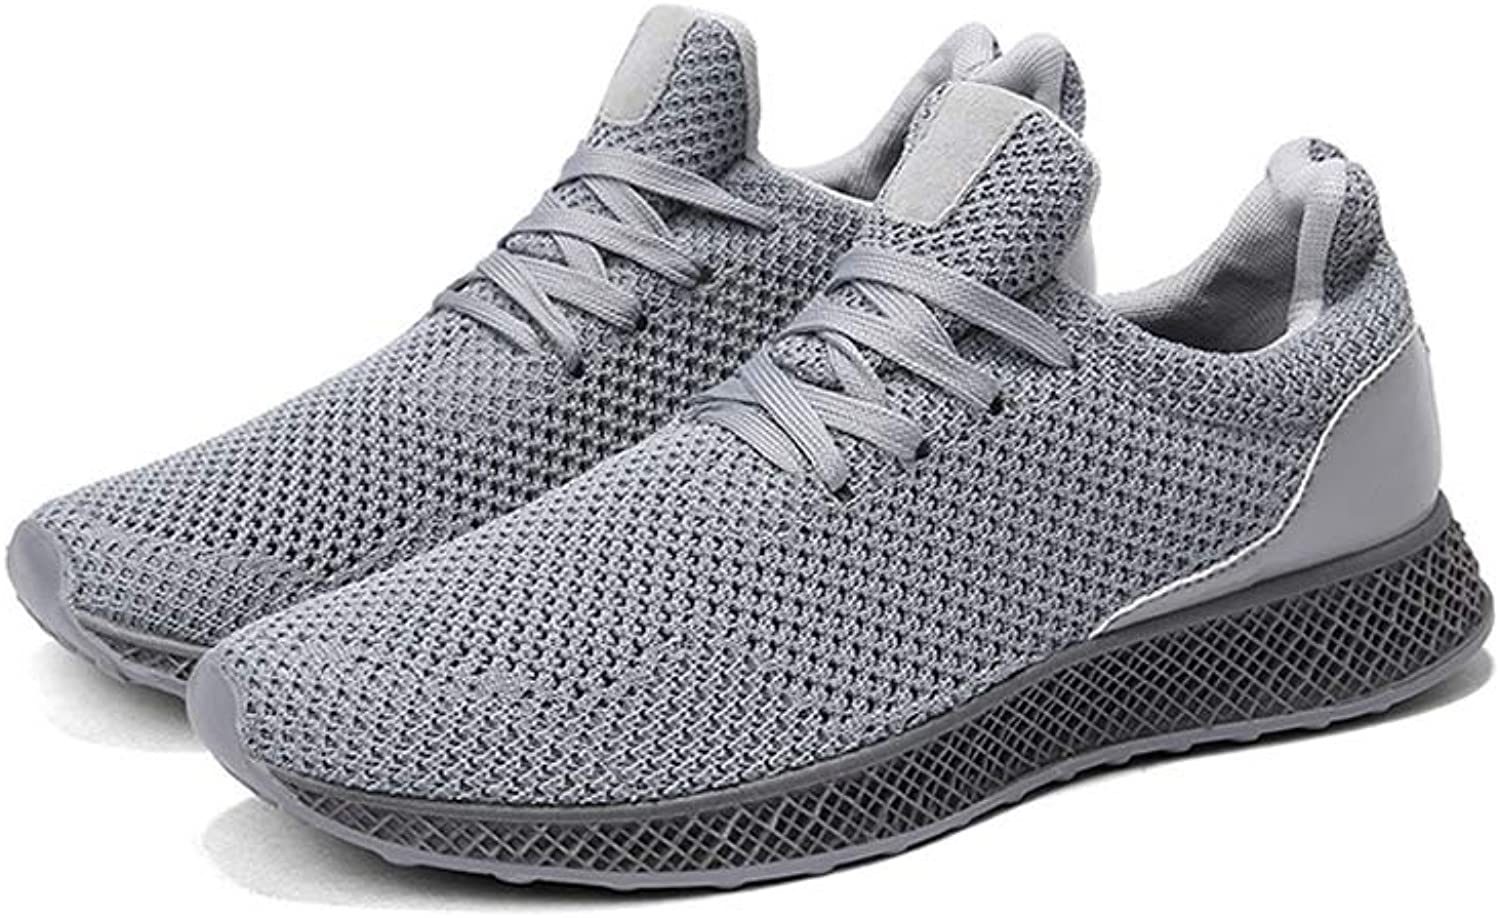 FUUI Mens Couple Flying Weaving Mesh shoes Outdoor Casual Comfortable Running Sports shoes Sneakers